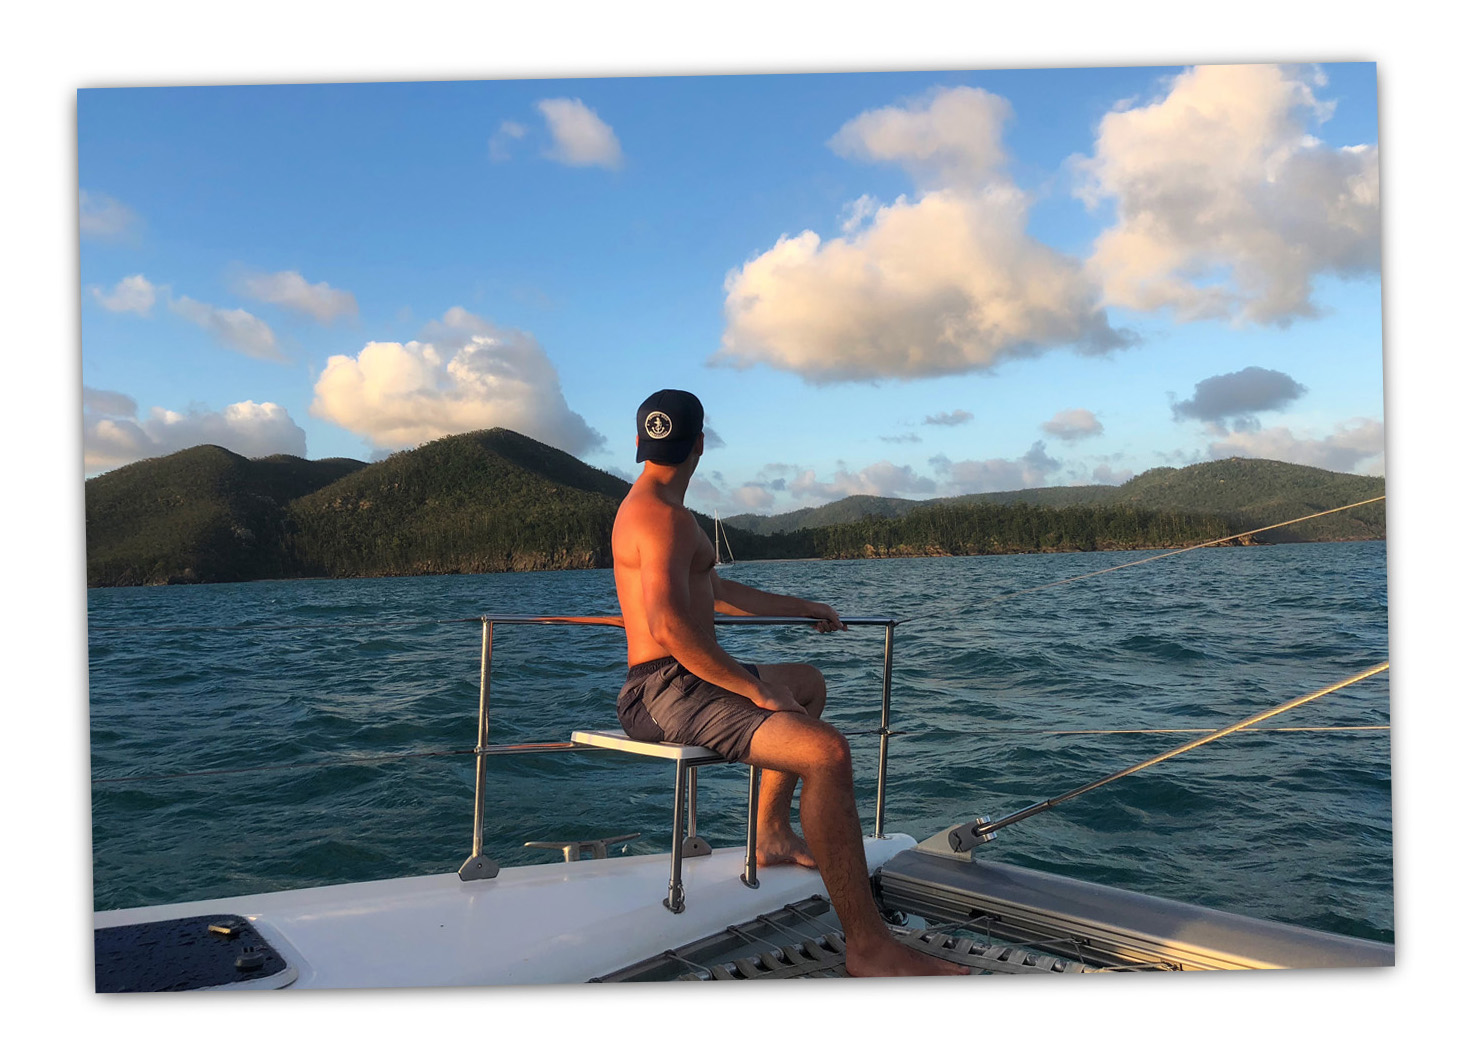 Sailing through the Whitsundays to the Great Barrier Reef in 2018.